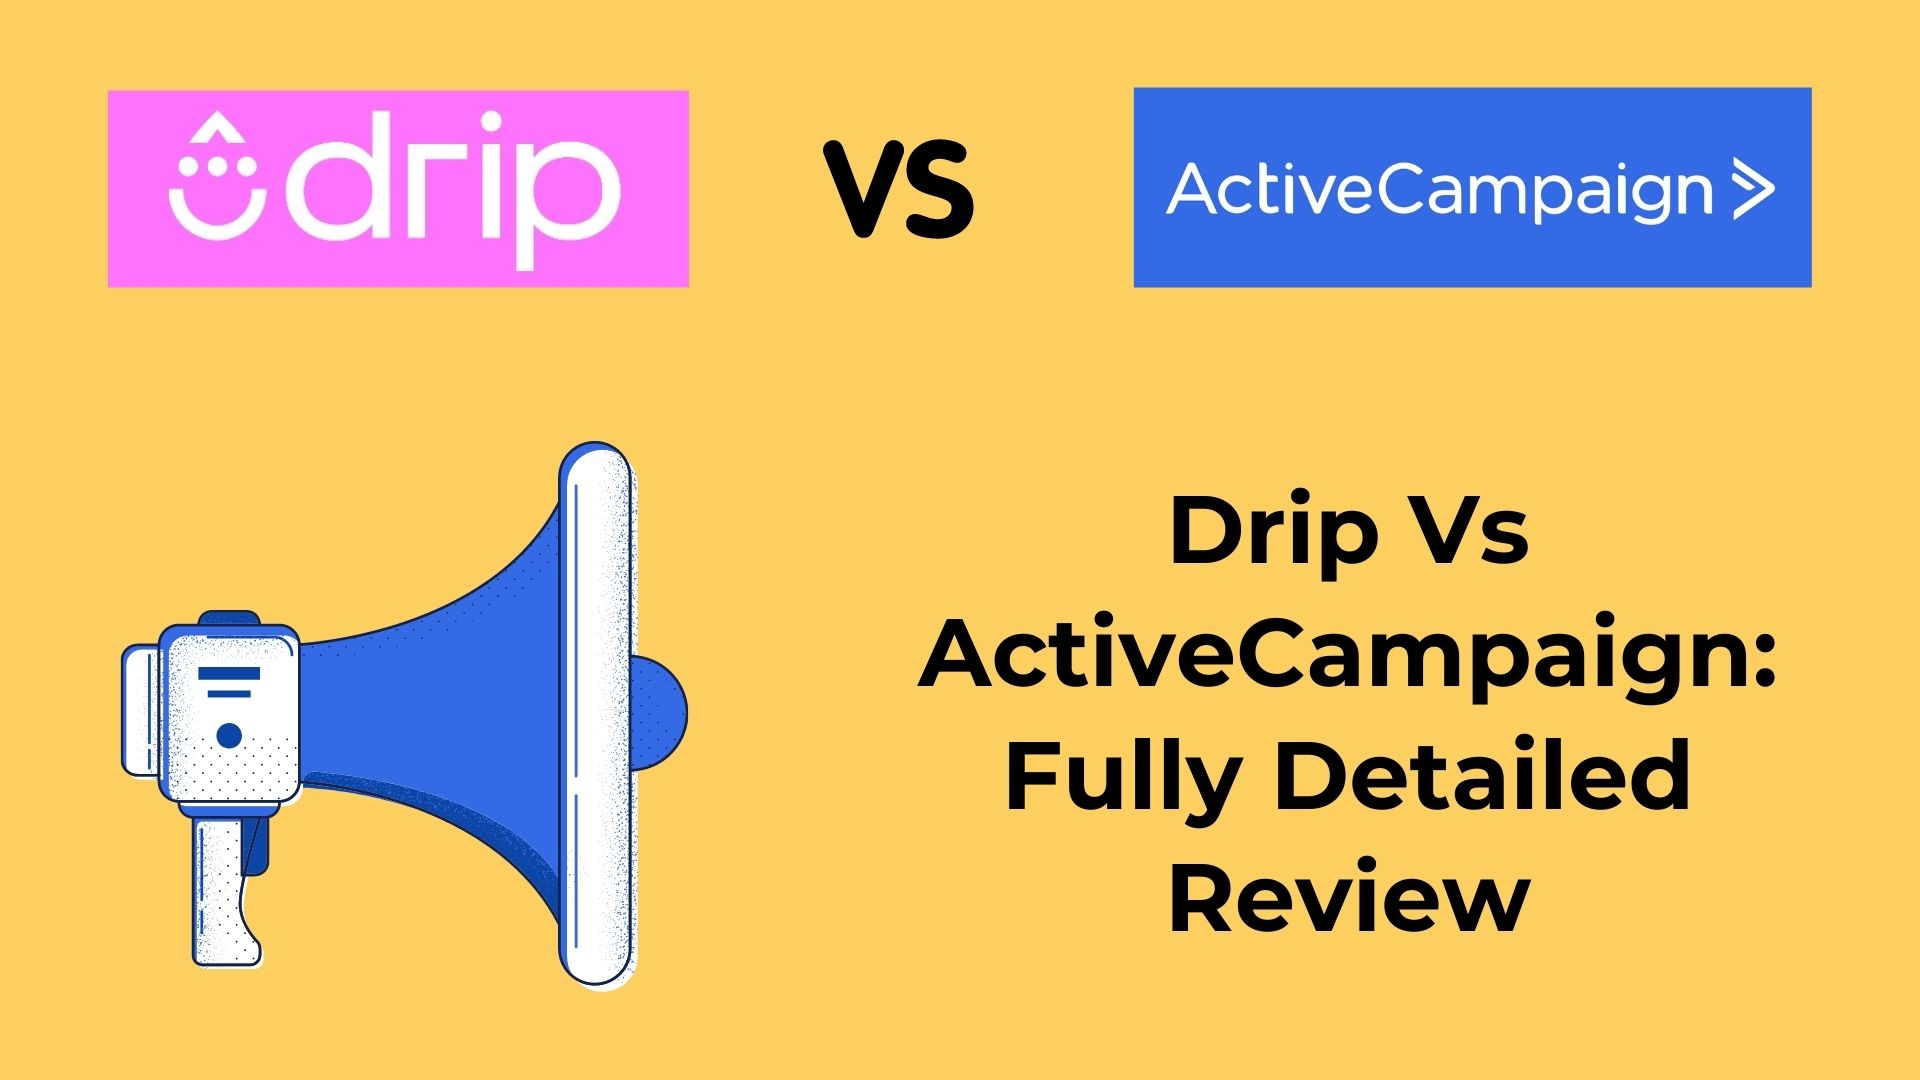 Drip Vs ActiveCampaign: Fully Detailed Non-Bias Review